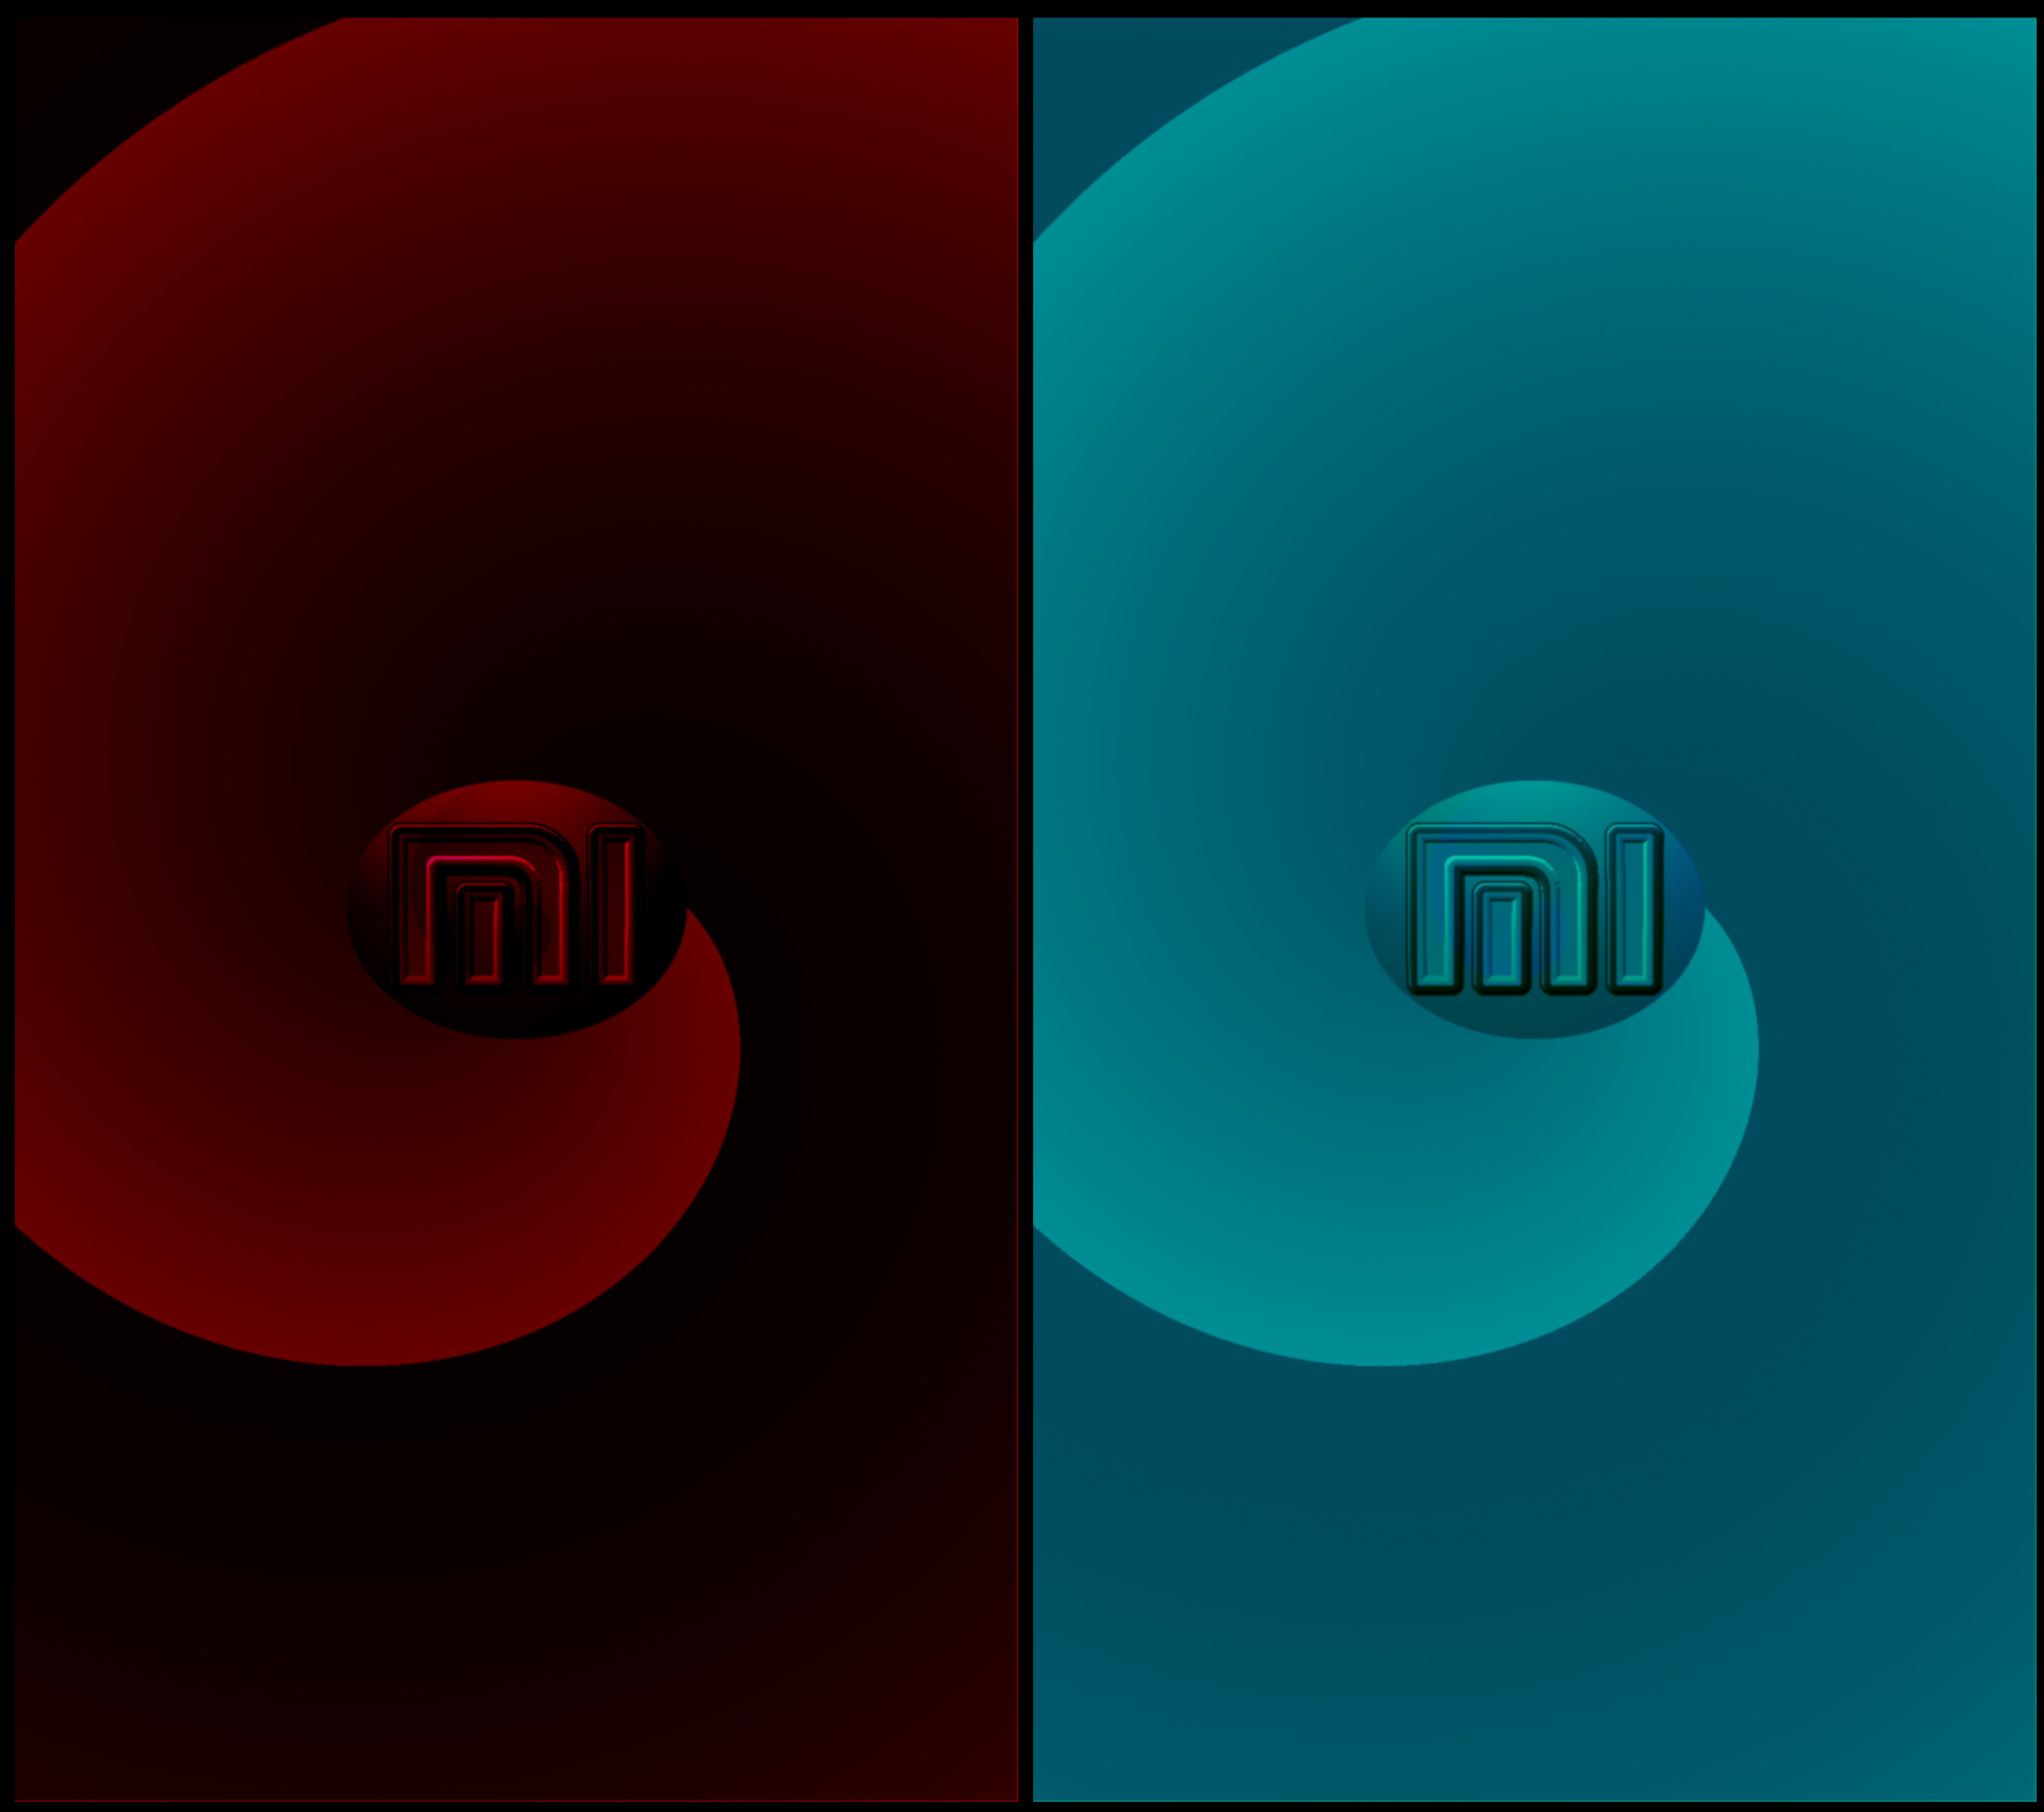 Mi4i Wallpaper by rvc-2011 on DeviantArt